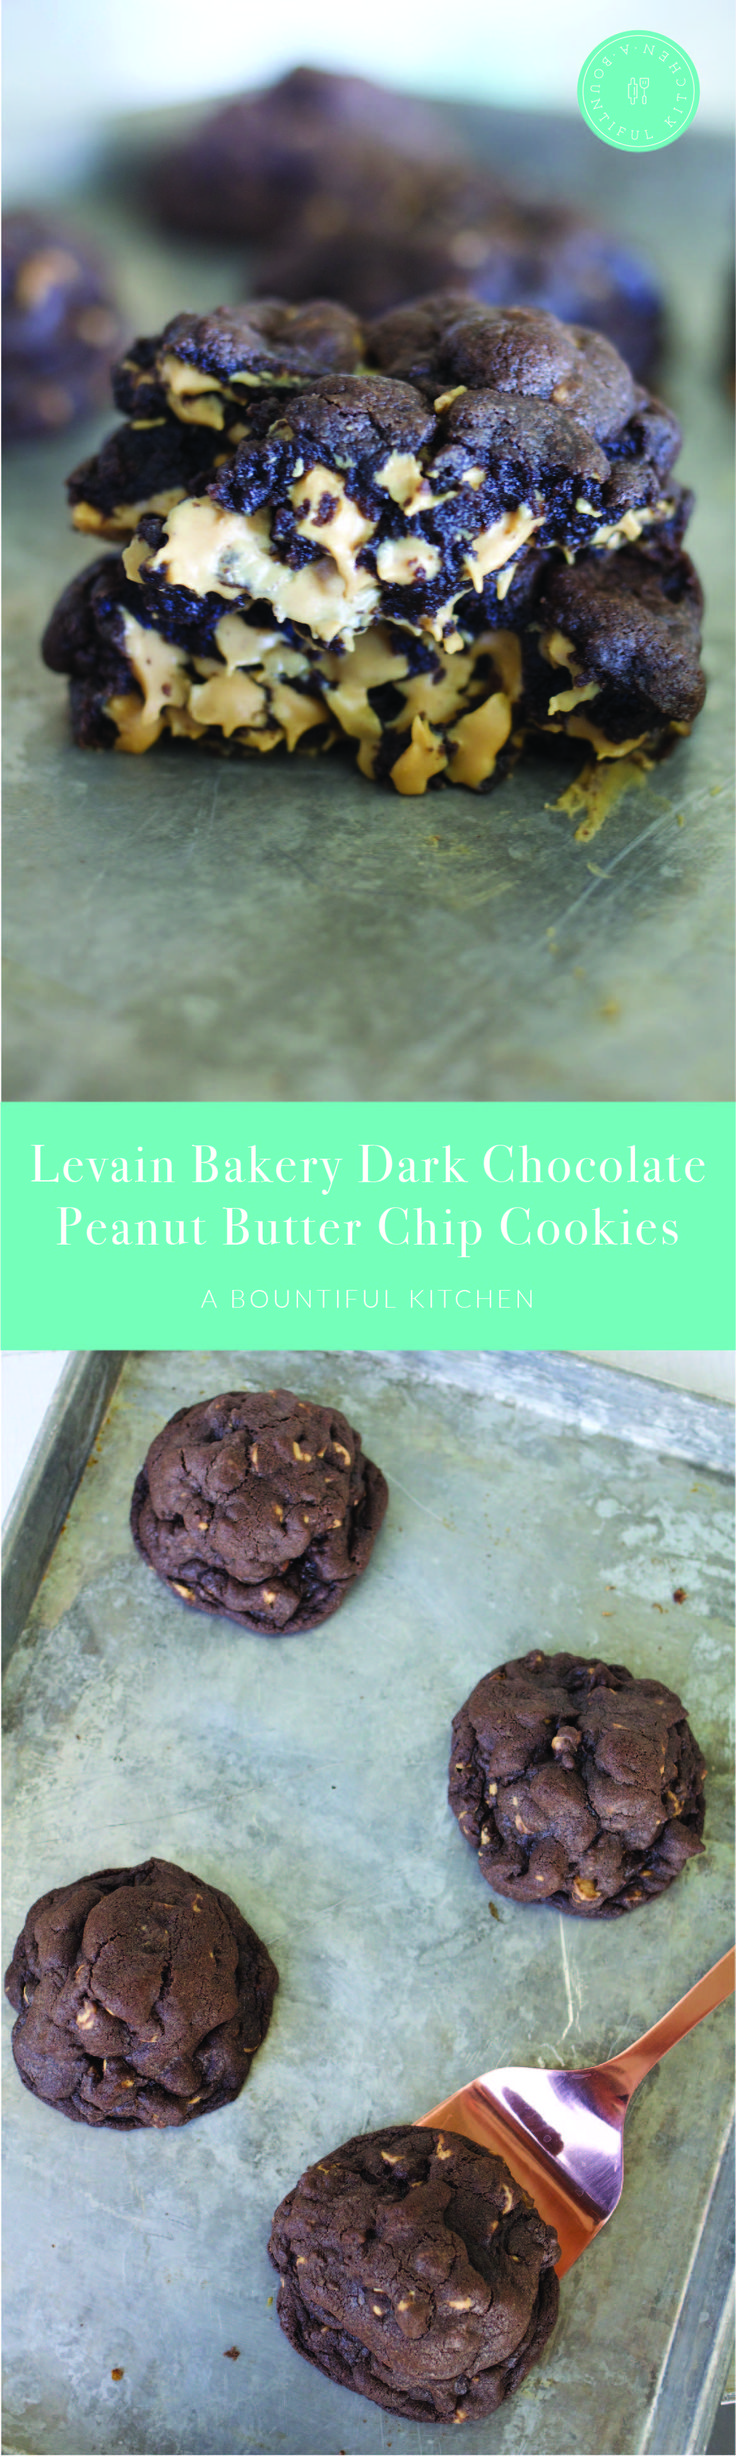 A Bountiful Kitchen: Levain Bakery Dark Chocolate Peanut Butter Chip Cookies are the most decadent peanut butter and chocolate lover's treat ever. Almost 1/2 lb of gooey, dark chocolate and peanut butter chips combined in to a cookie makes this one of the most sought after recipes on A Bountiful Kitchen! #chocolate #peanutbutter #cookies #levainbakery